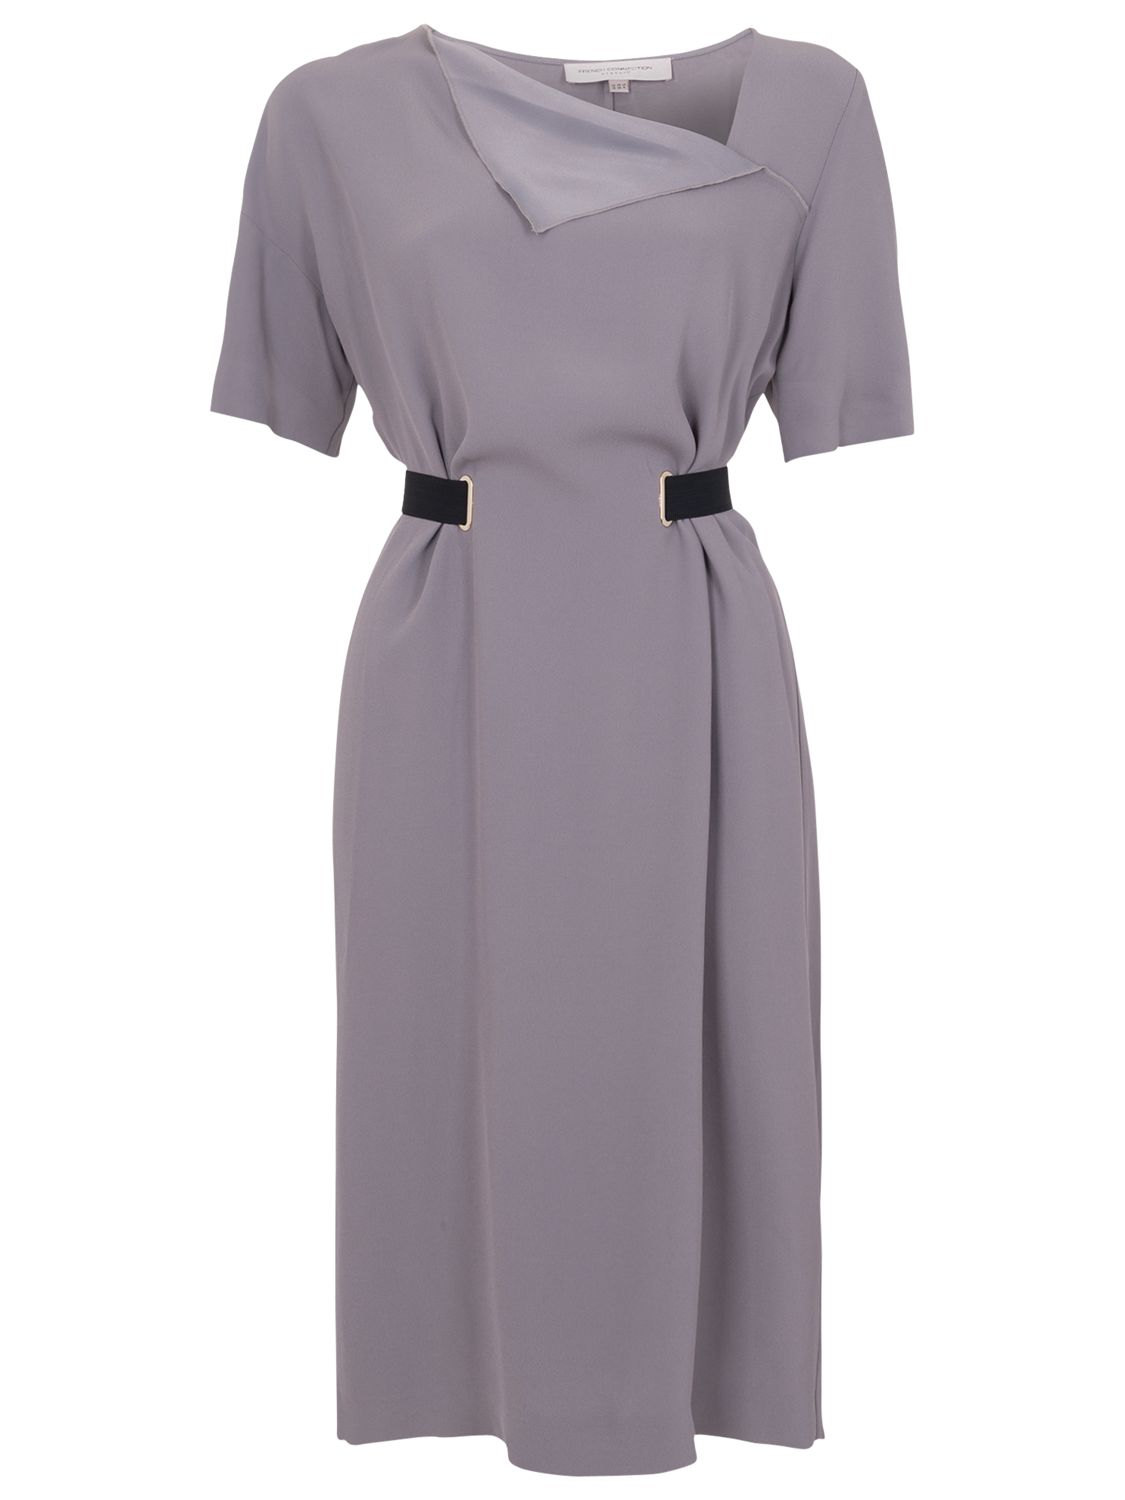 french connection emmeline crepe dress grey otter, french, connection, emmeline, crepe, dress, grey, otter, french connection, 12|10, clearance, womenswear offers, womens dresses offers, new years party offers, women, inactive womenswear, new reductions, womens dresses, special offers, edition magazine, workwear, 1589172